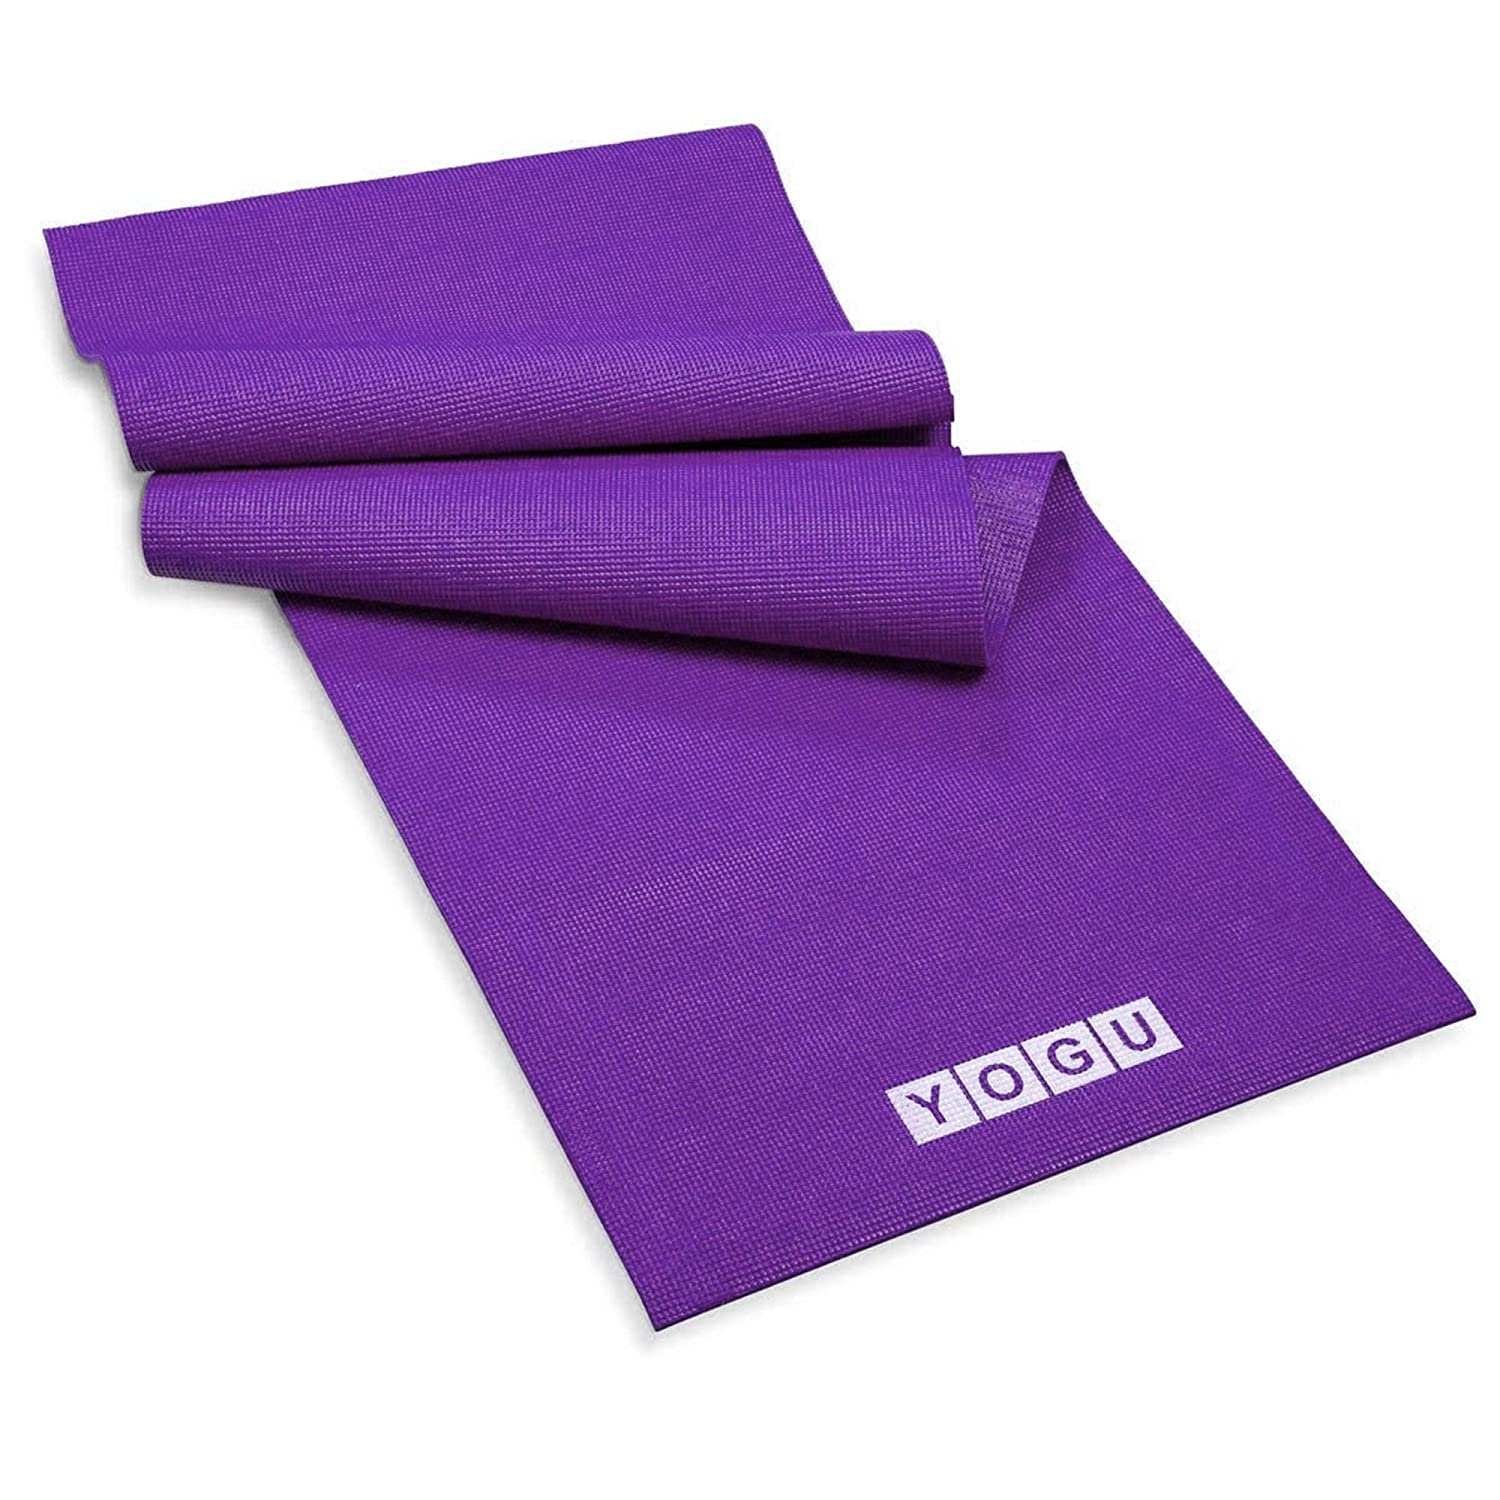 YOGU Exercise Yoga Mat 1 4 Inch Thick Multi-Purpose Lightweight Pilates Fitness Mats Durable Washable Non-Slip Surfaces Sweat-Proof Gym Workout Mat with Carrier Strap – 6 FT x 2 FT